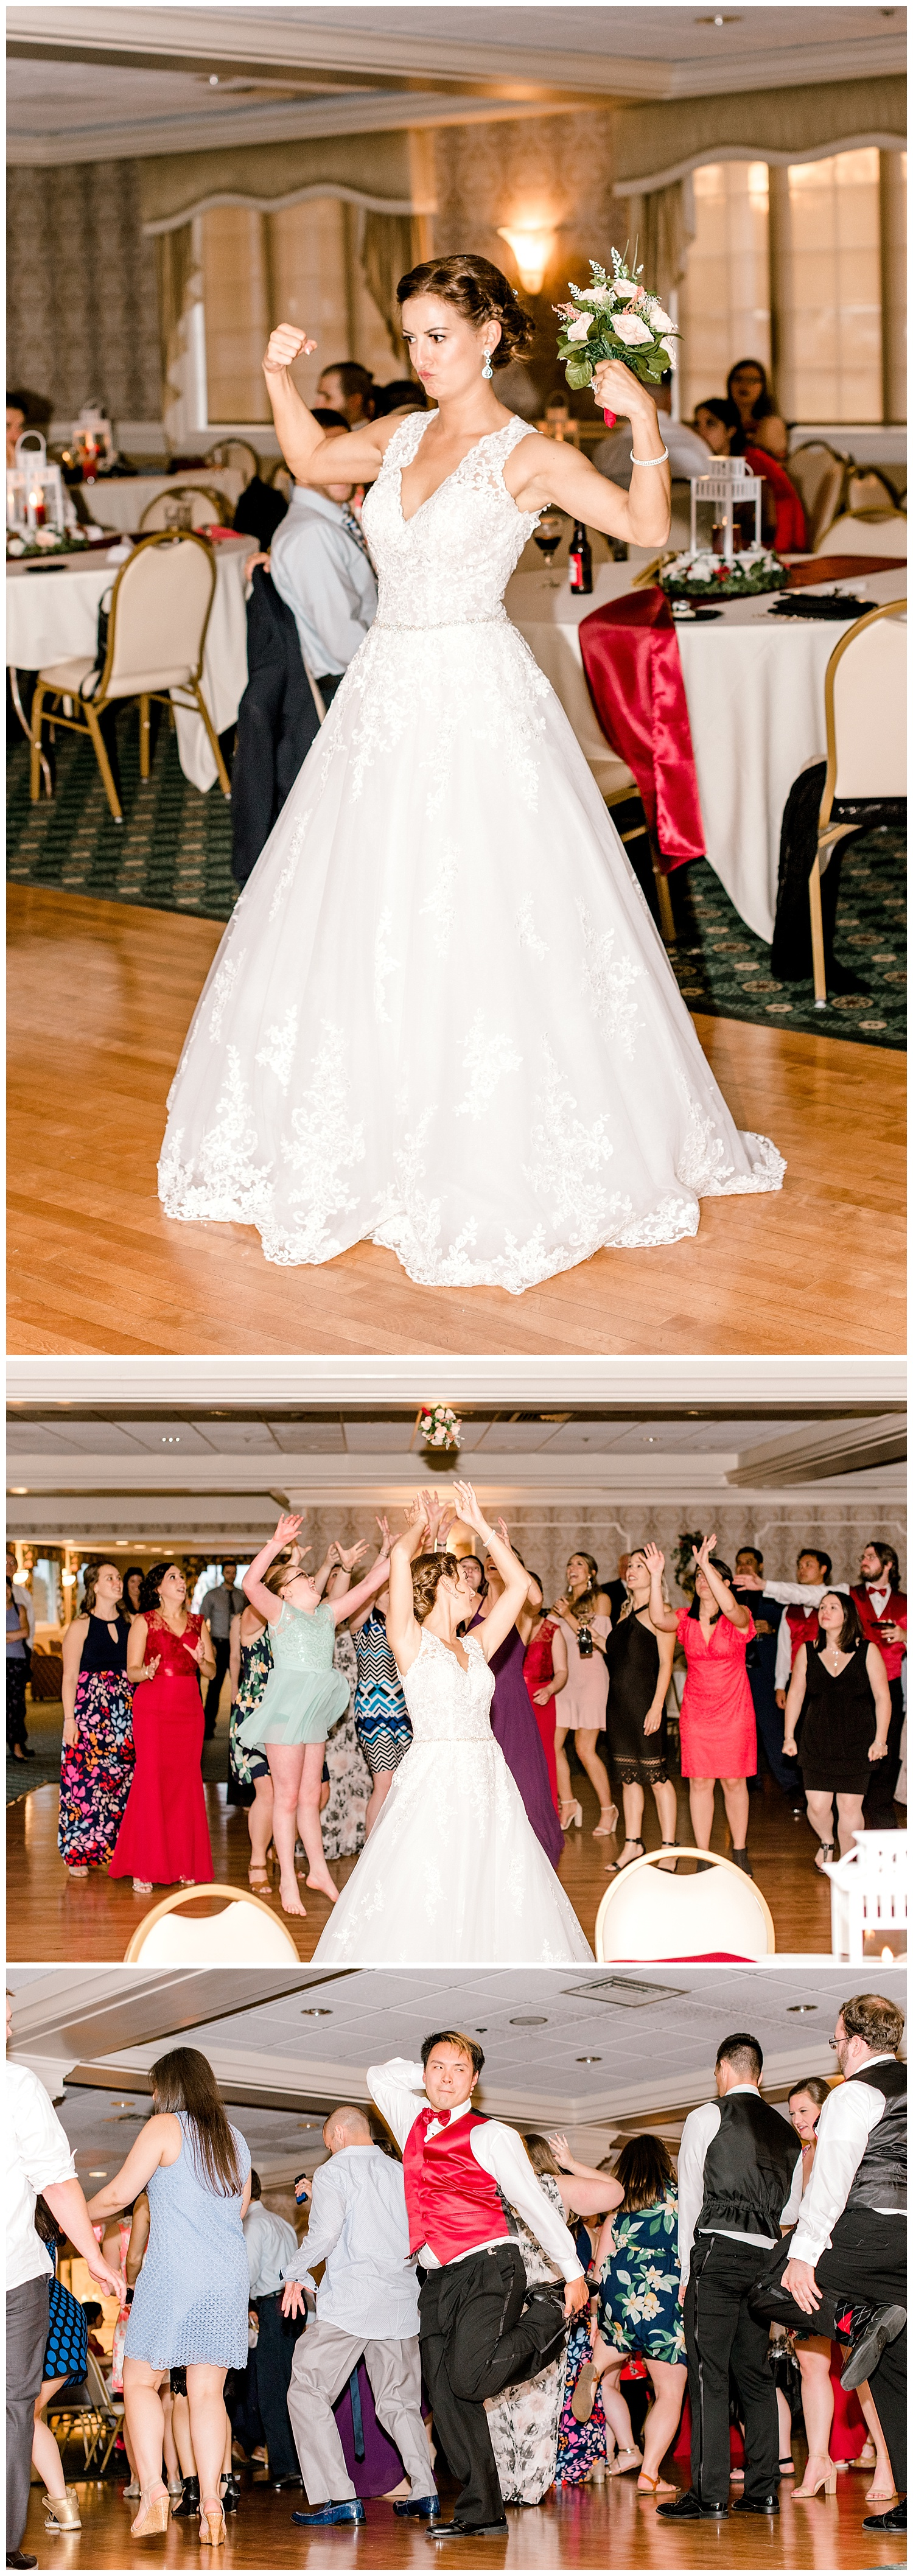 june9-wachusett-country-club-wedding-photography-boston-massachusetts-28.jpg